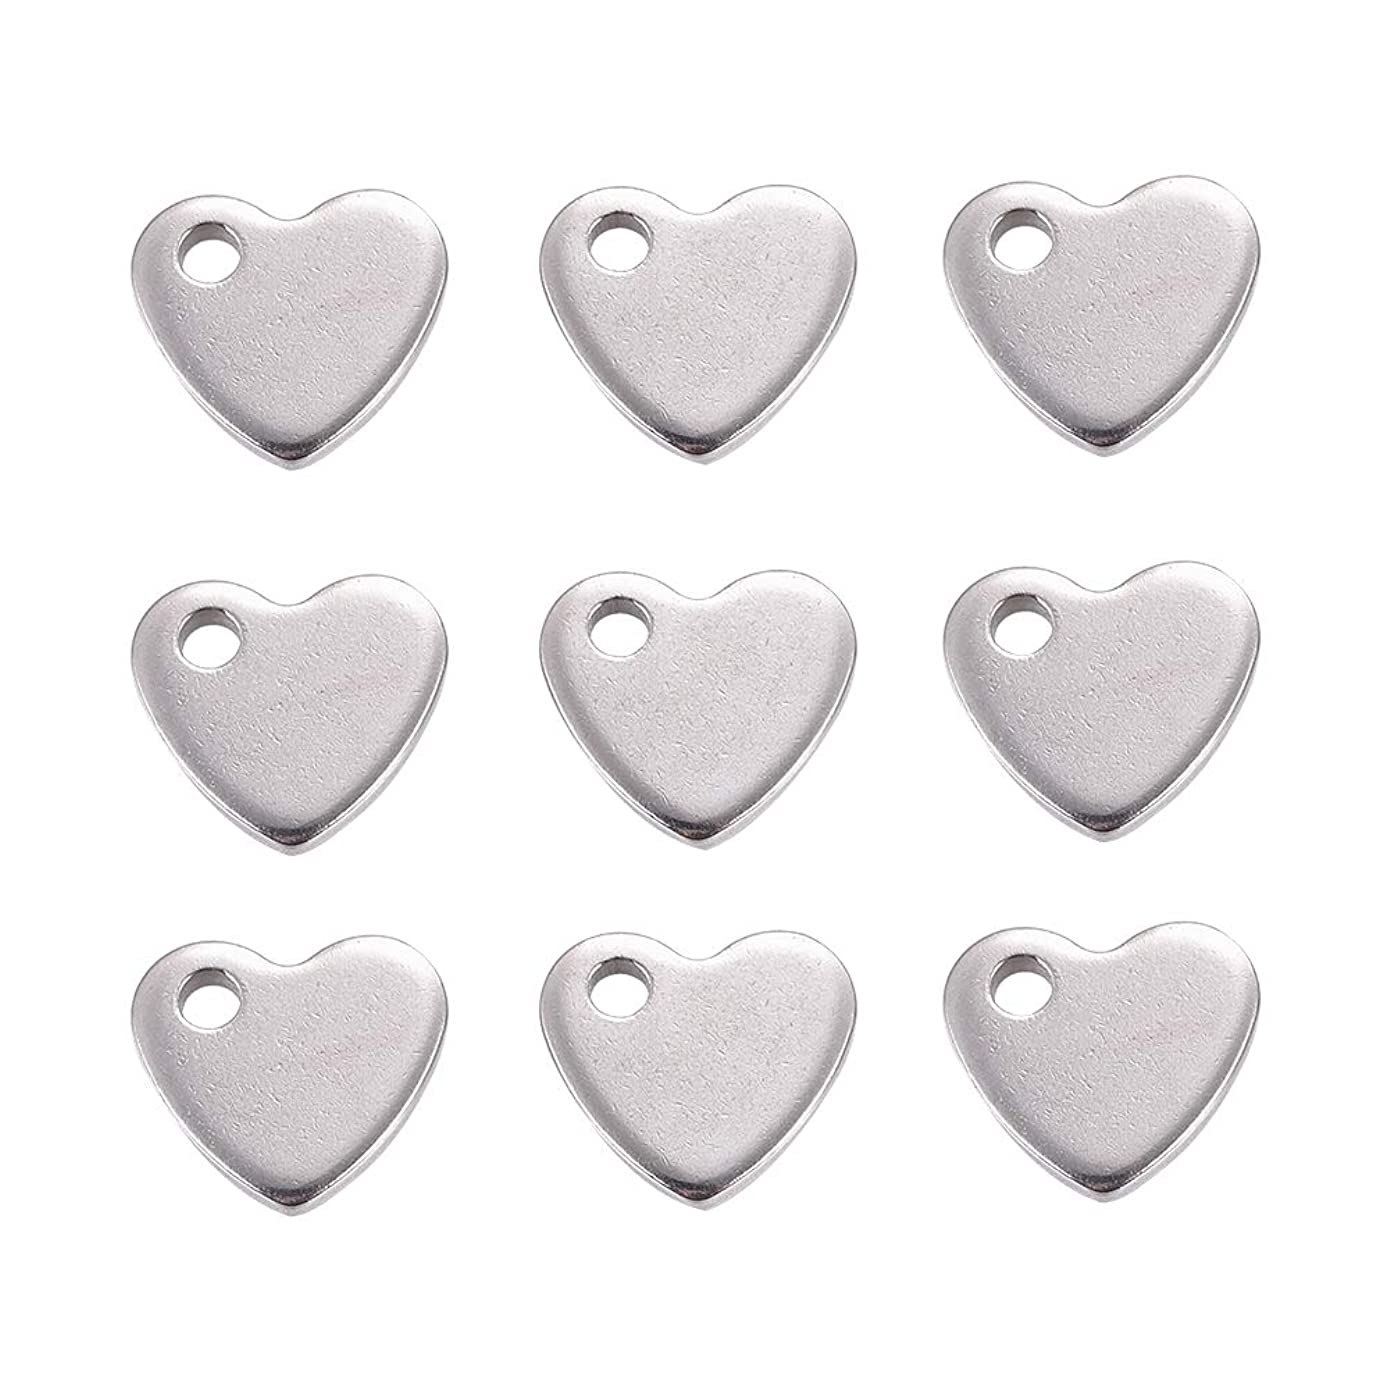 DanLingJewelry 304 Stainless Steel Blank Stamping Tags Heart Charm Pendant for DIY Crafting Necklace Bracelet Jewelry Findings(Stainless Steel Color-100pcs,10 x 9 x 1.5mm,Hole:2mm) uq31842494